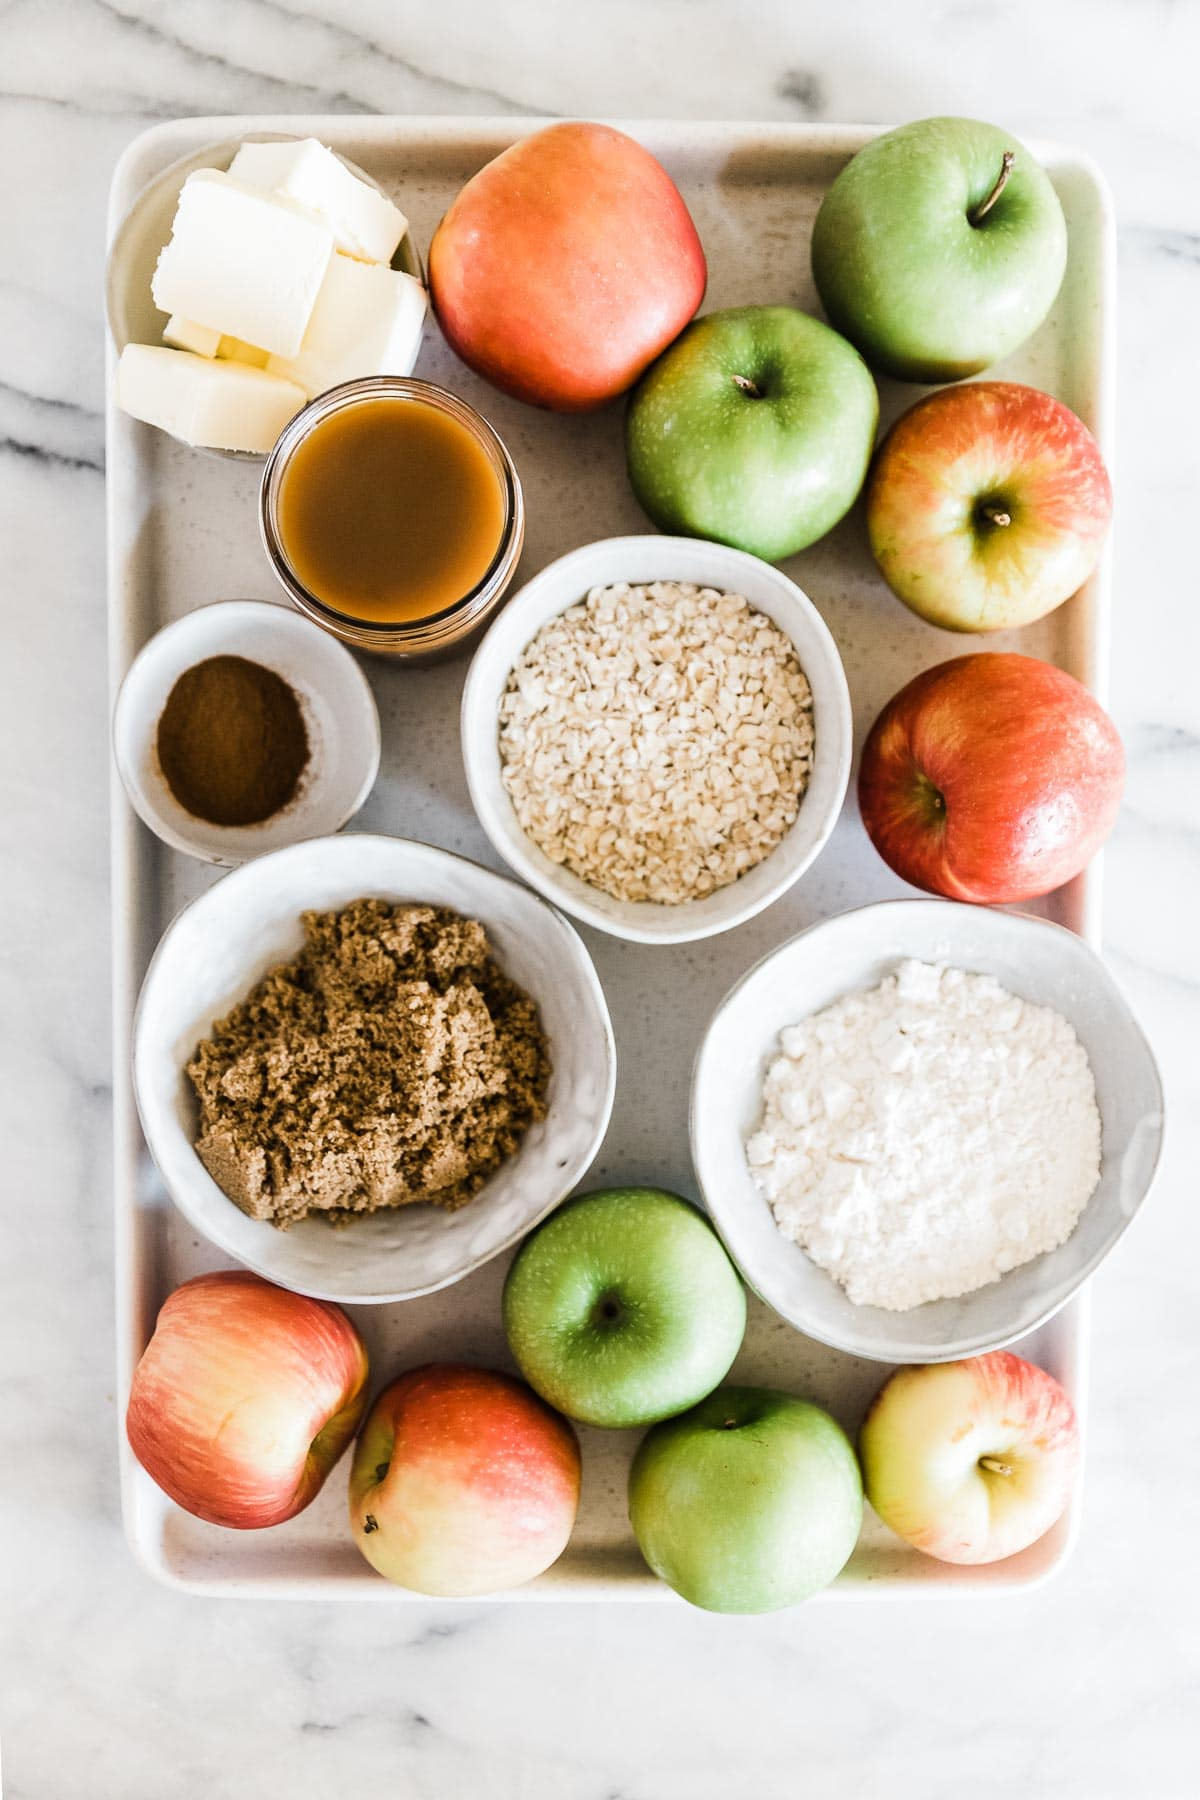 Apples, oats, flour, brown sugar, cinnamon, and caramel on a white baking tray.